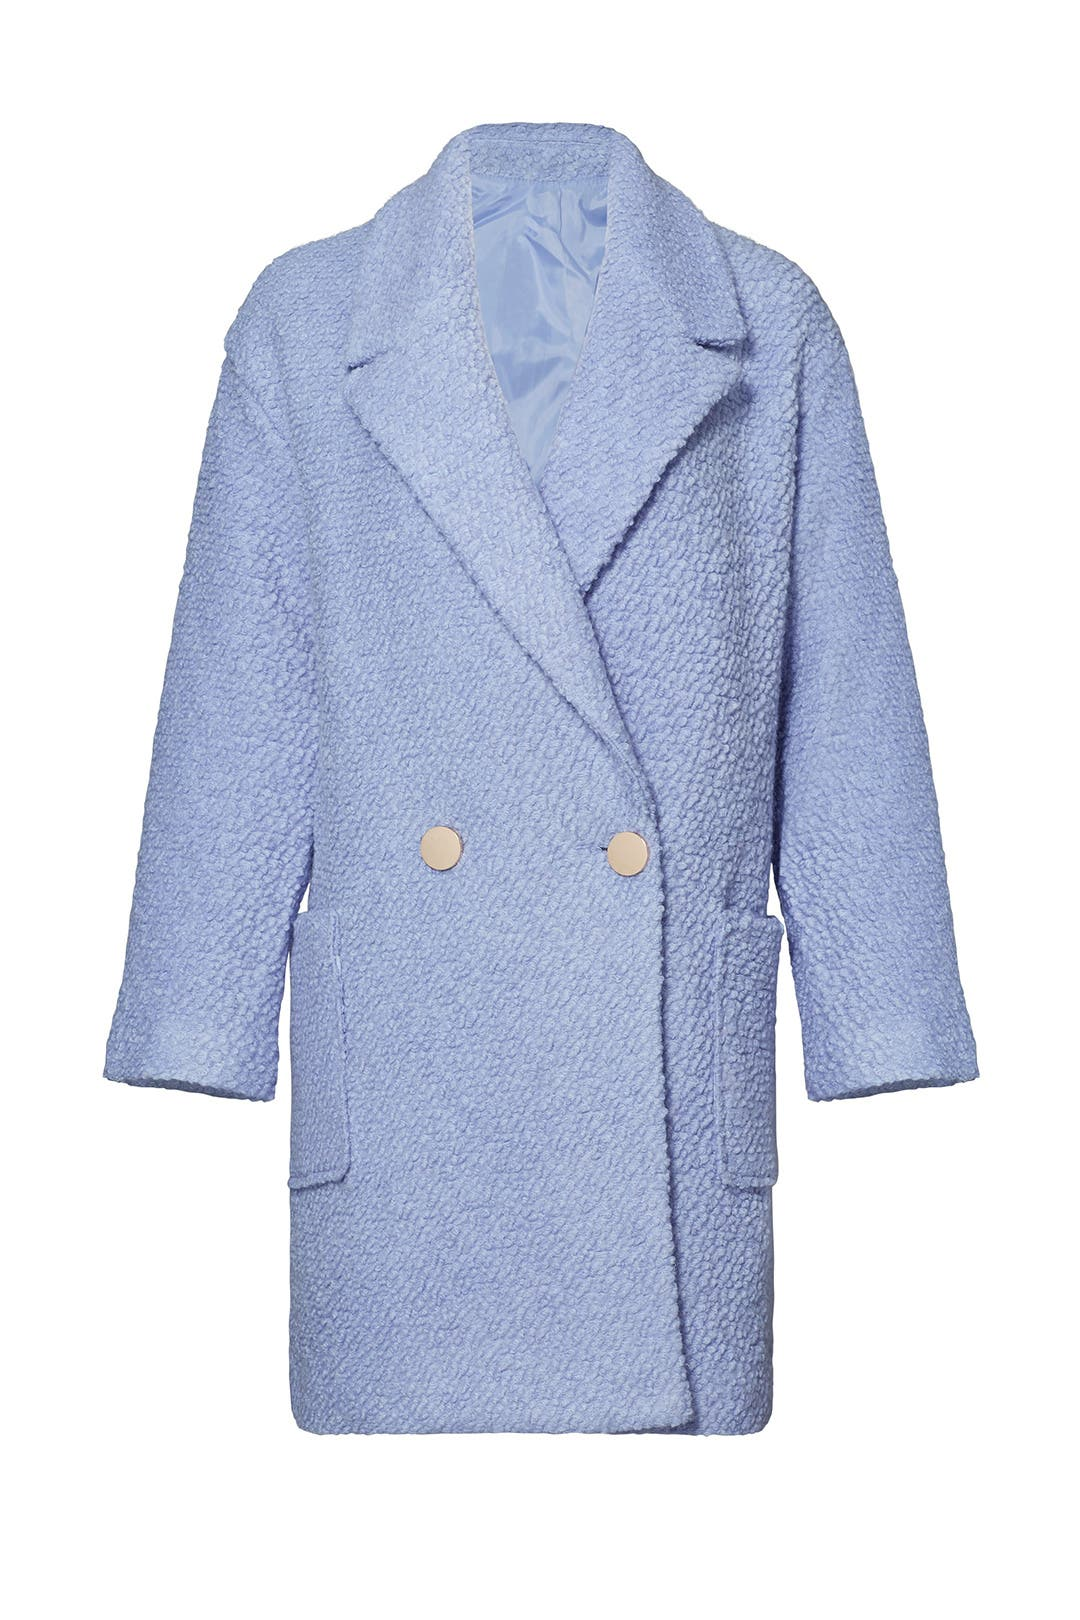 a3db12c2463d Powder Blue Oversized Boucle Coat by English Factory for $30   Rent the  Runway